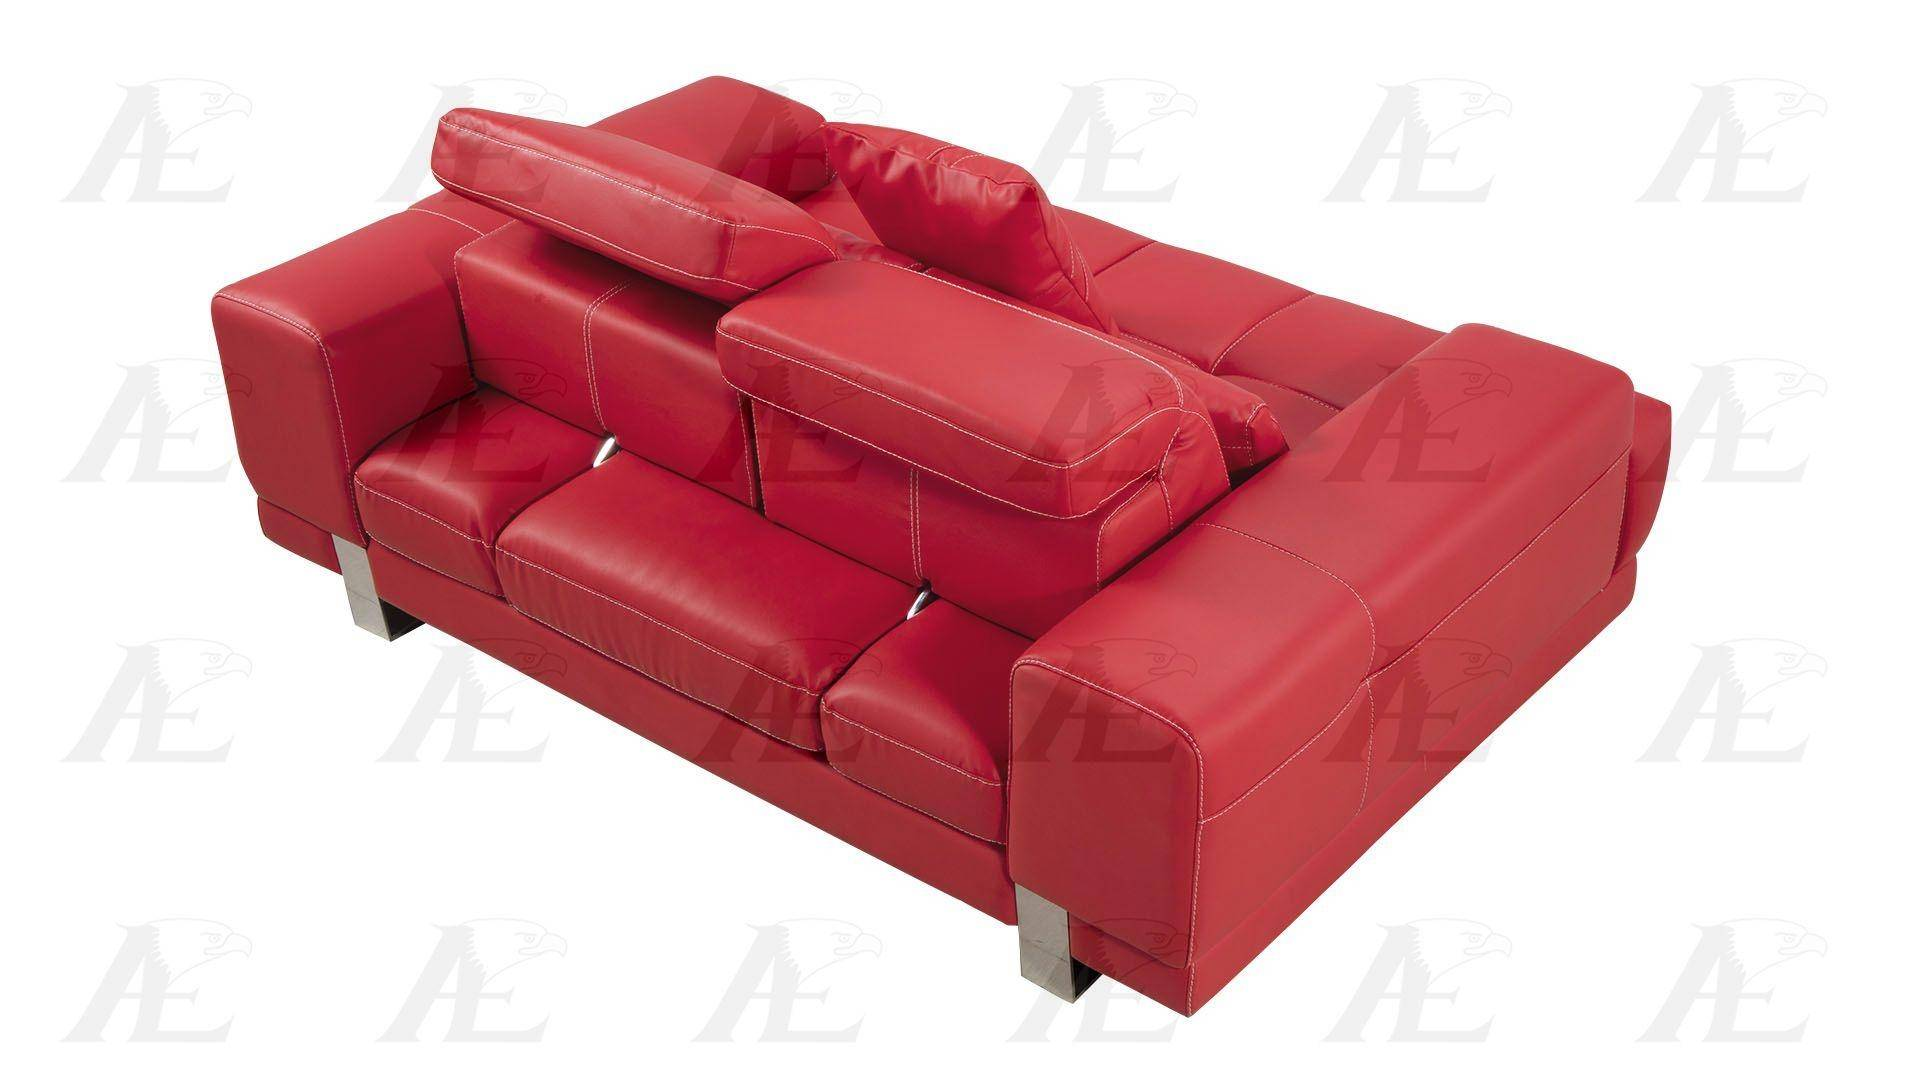 Strange American Eagle Furniture Ae606 Red Sofa Loveseat And 2 Chair Evergreenethics Interior Chair Design Evergreenethicsorg